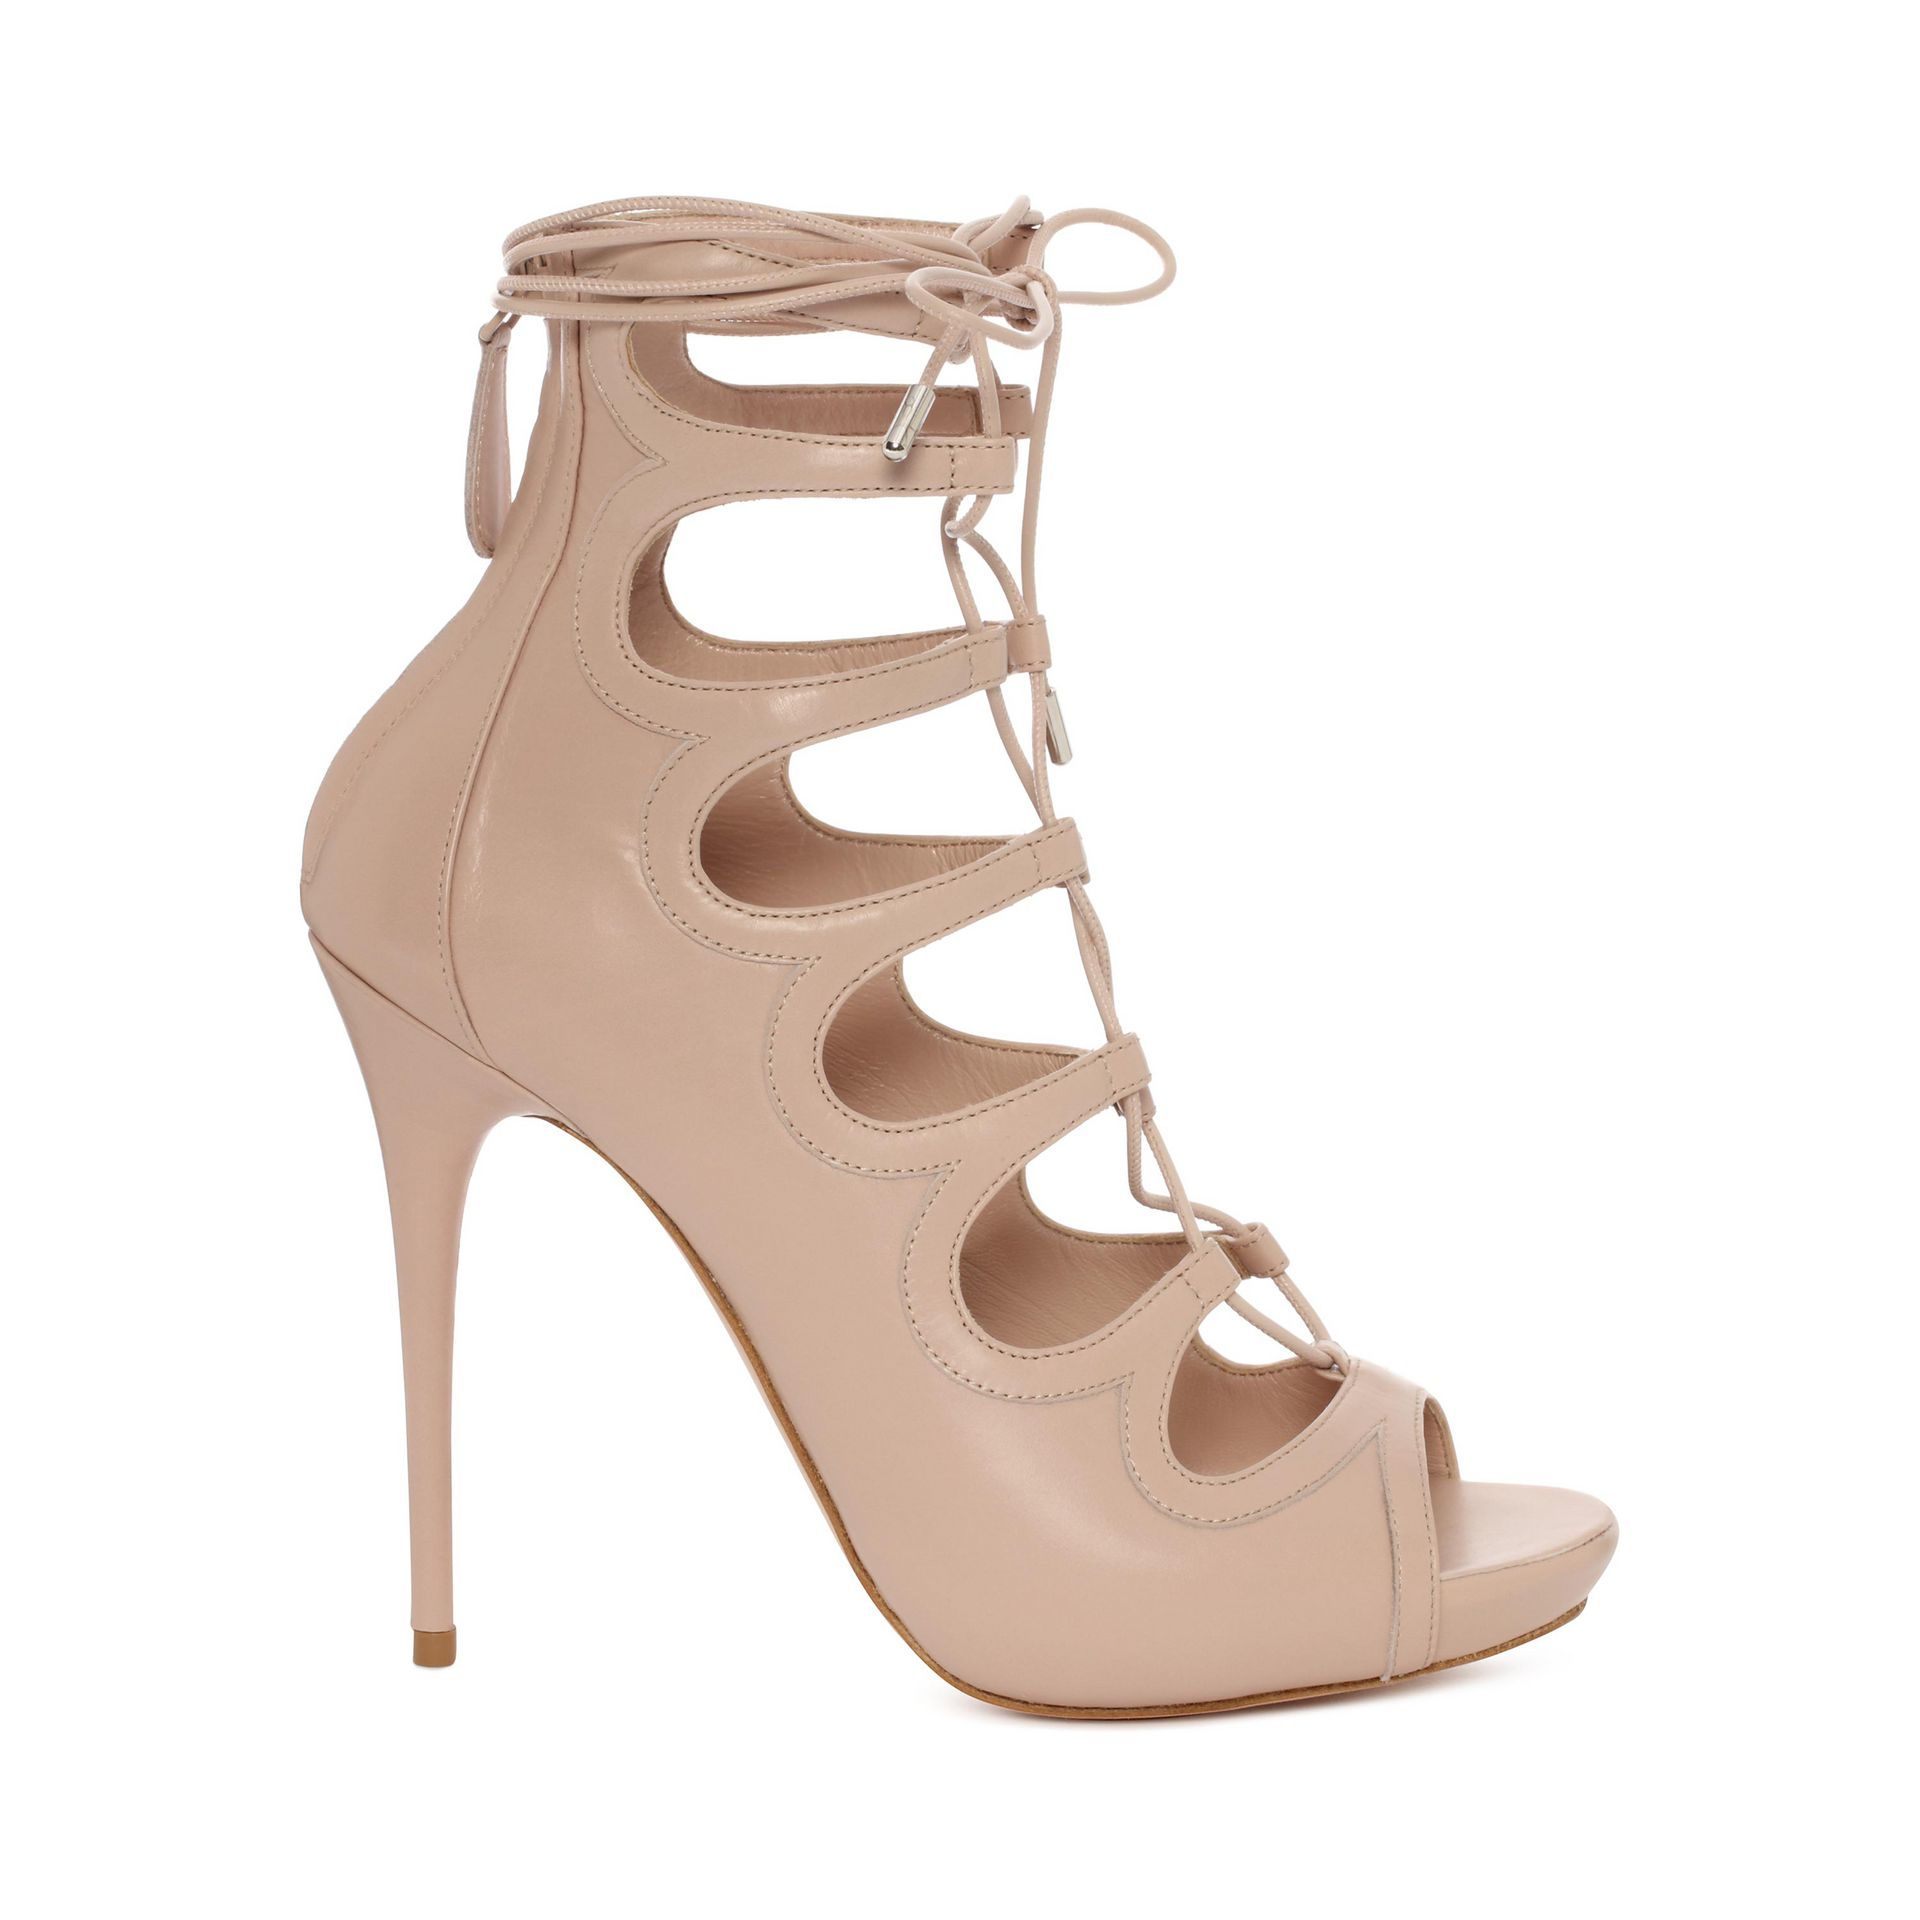 86e66c38d2f6 Alexander McQueen Cuba Calf Leather Lace Up Sandal in Natural - Lyst